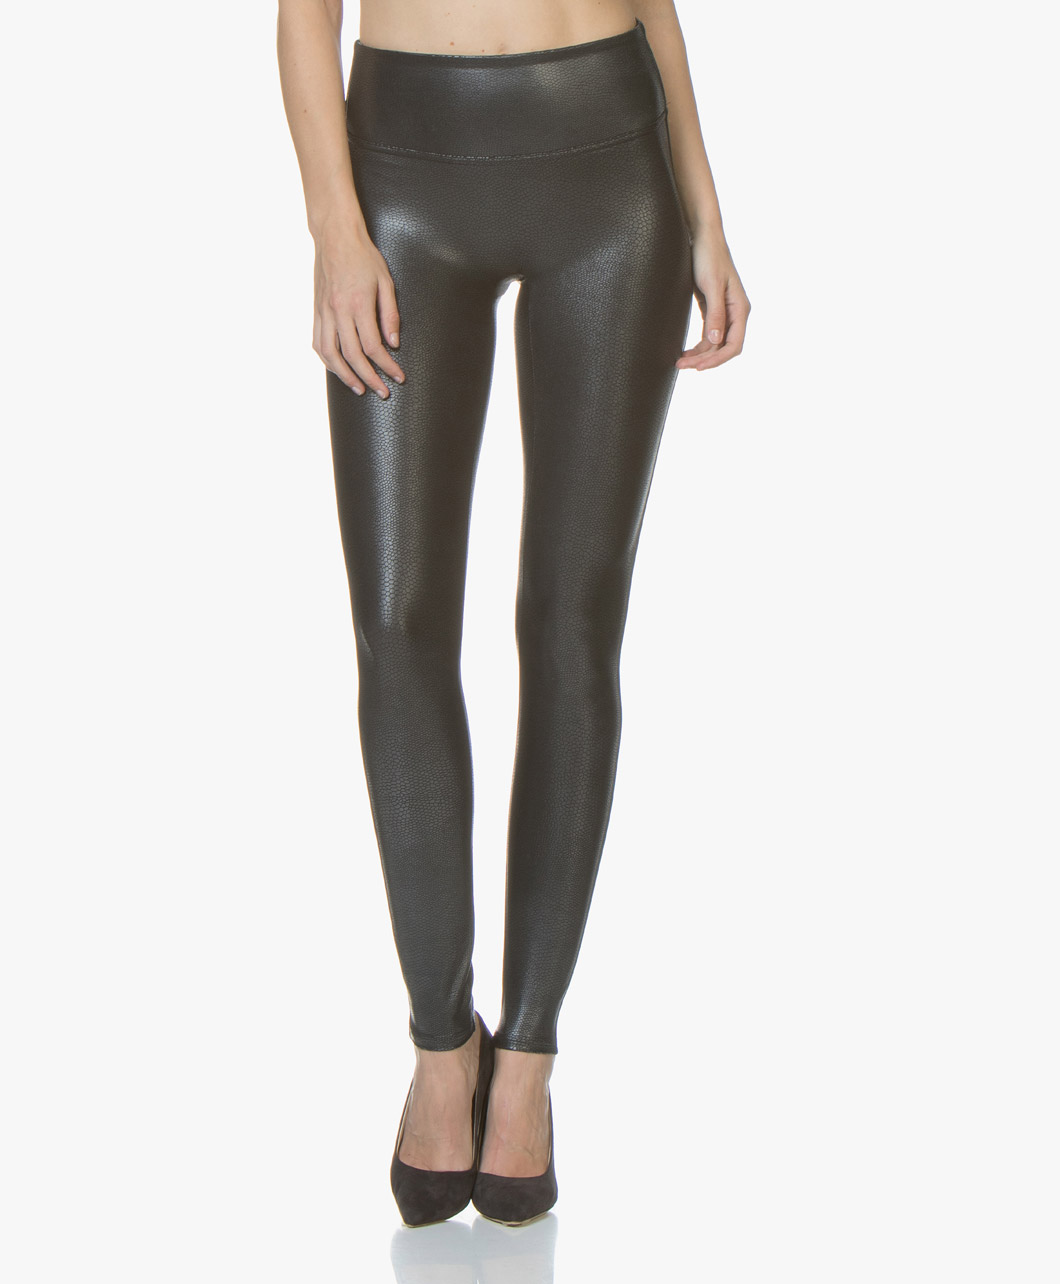 212b7df52cb2ad SPANX® Faux Leather Pebbled Leggings - Pebble Grey - spx 20186r 9296 ...